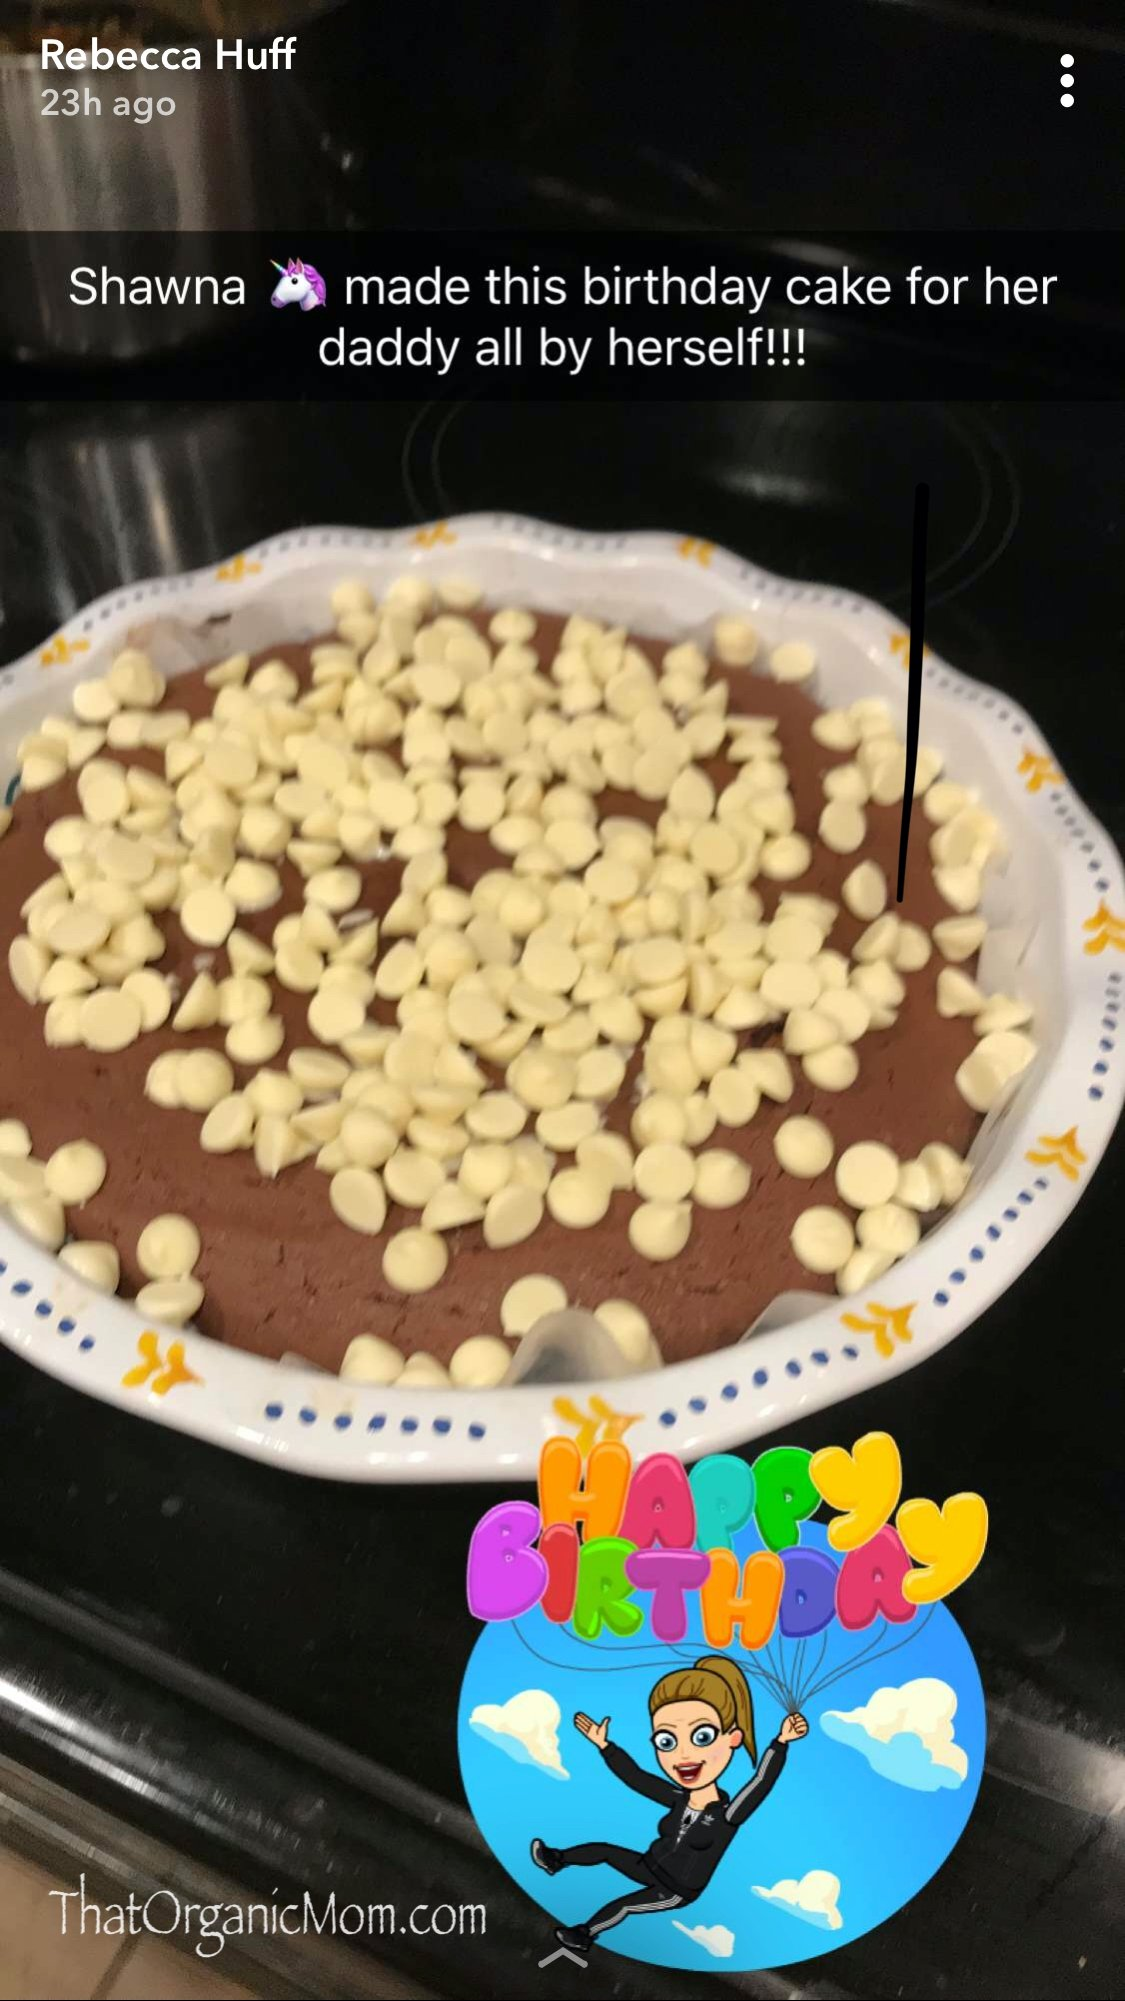 Rich and Easy Chocolate Cake - Kids in the Kitchen 5